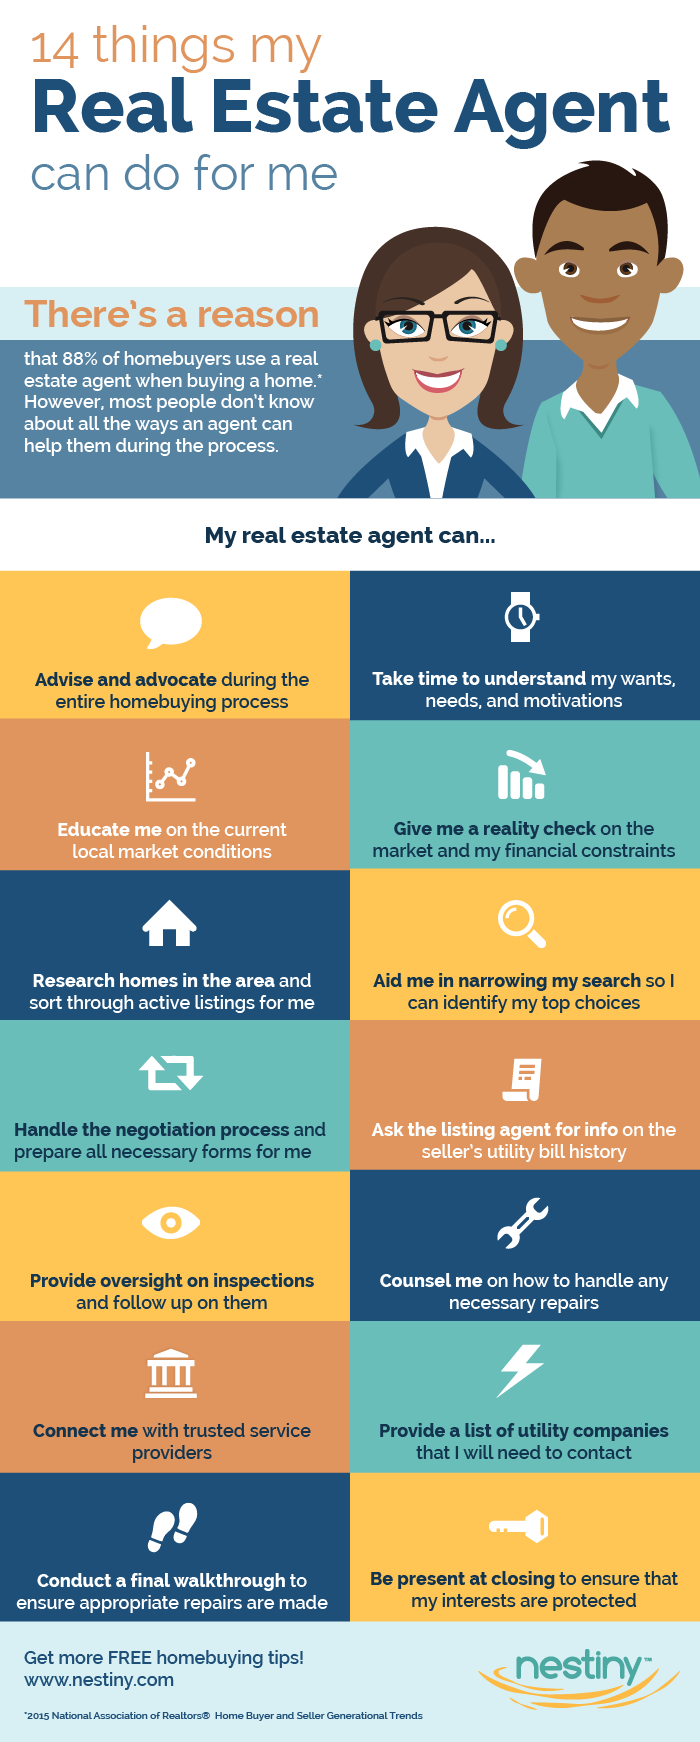 14 Tasks Your Agent Can Do For You Home Buying Process Home Buying Tips Real Estate Articles